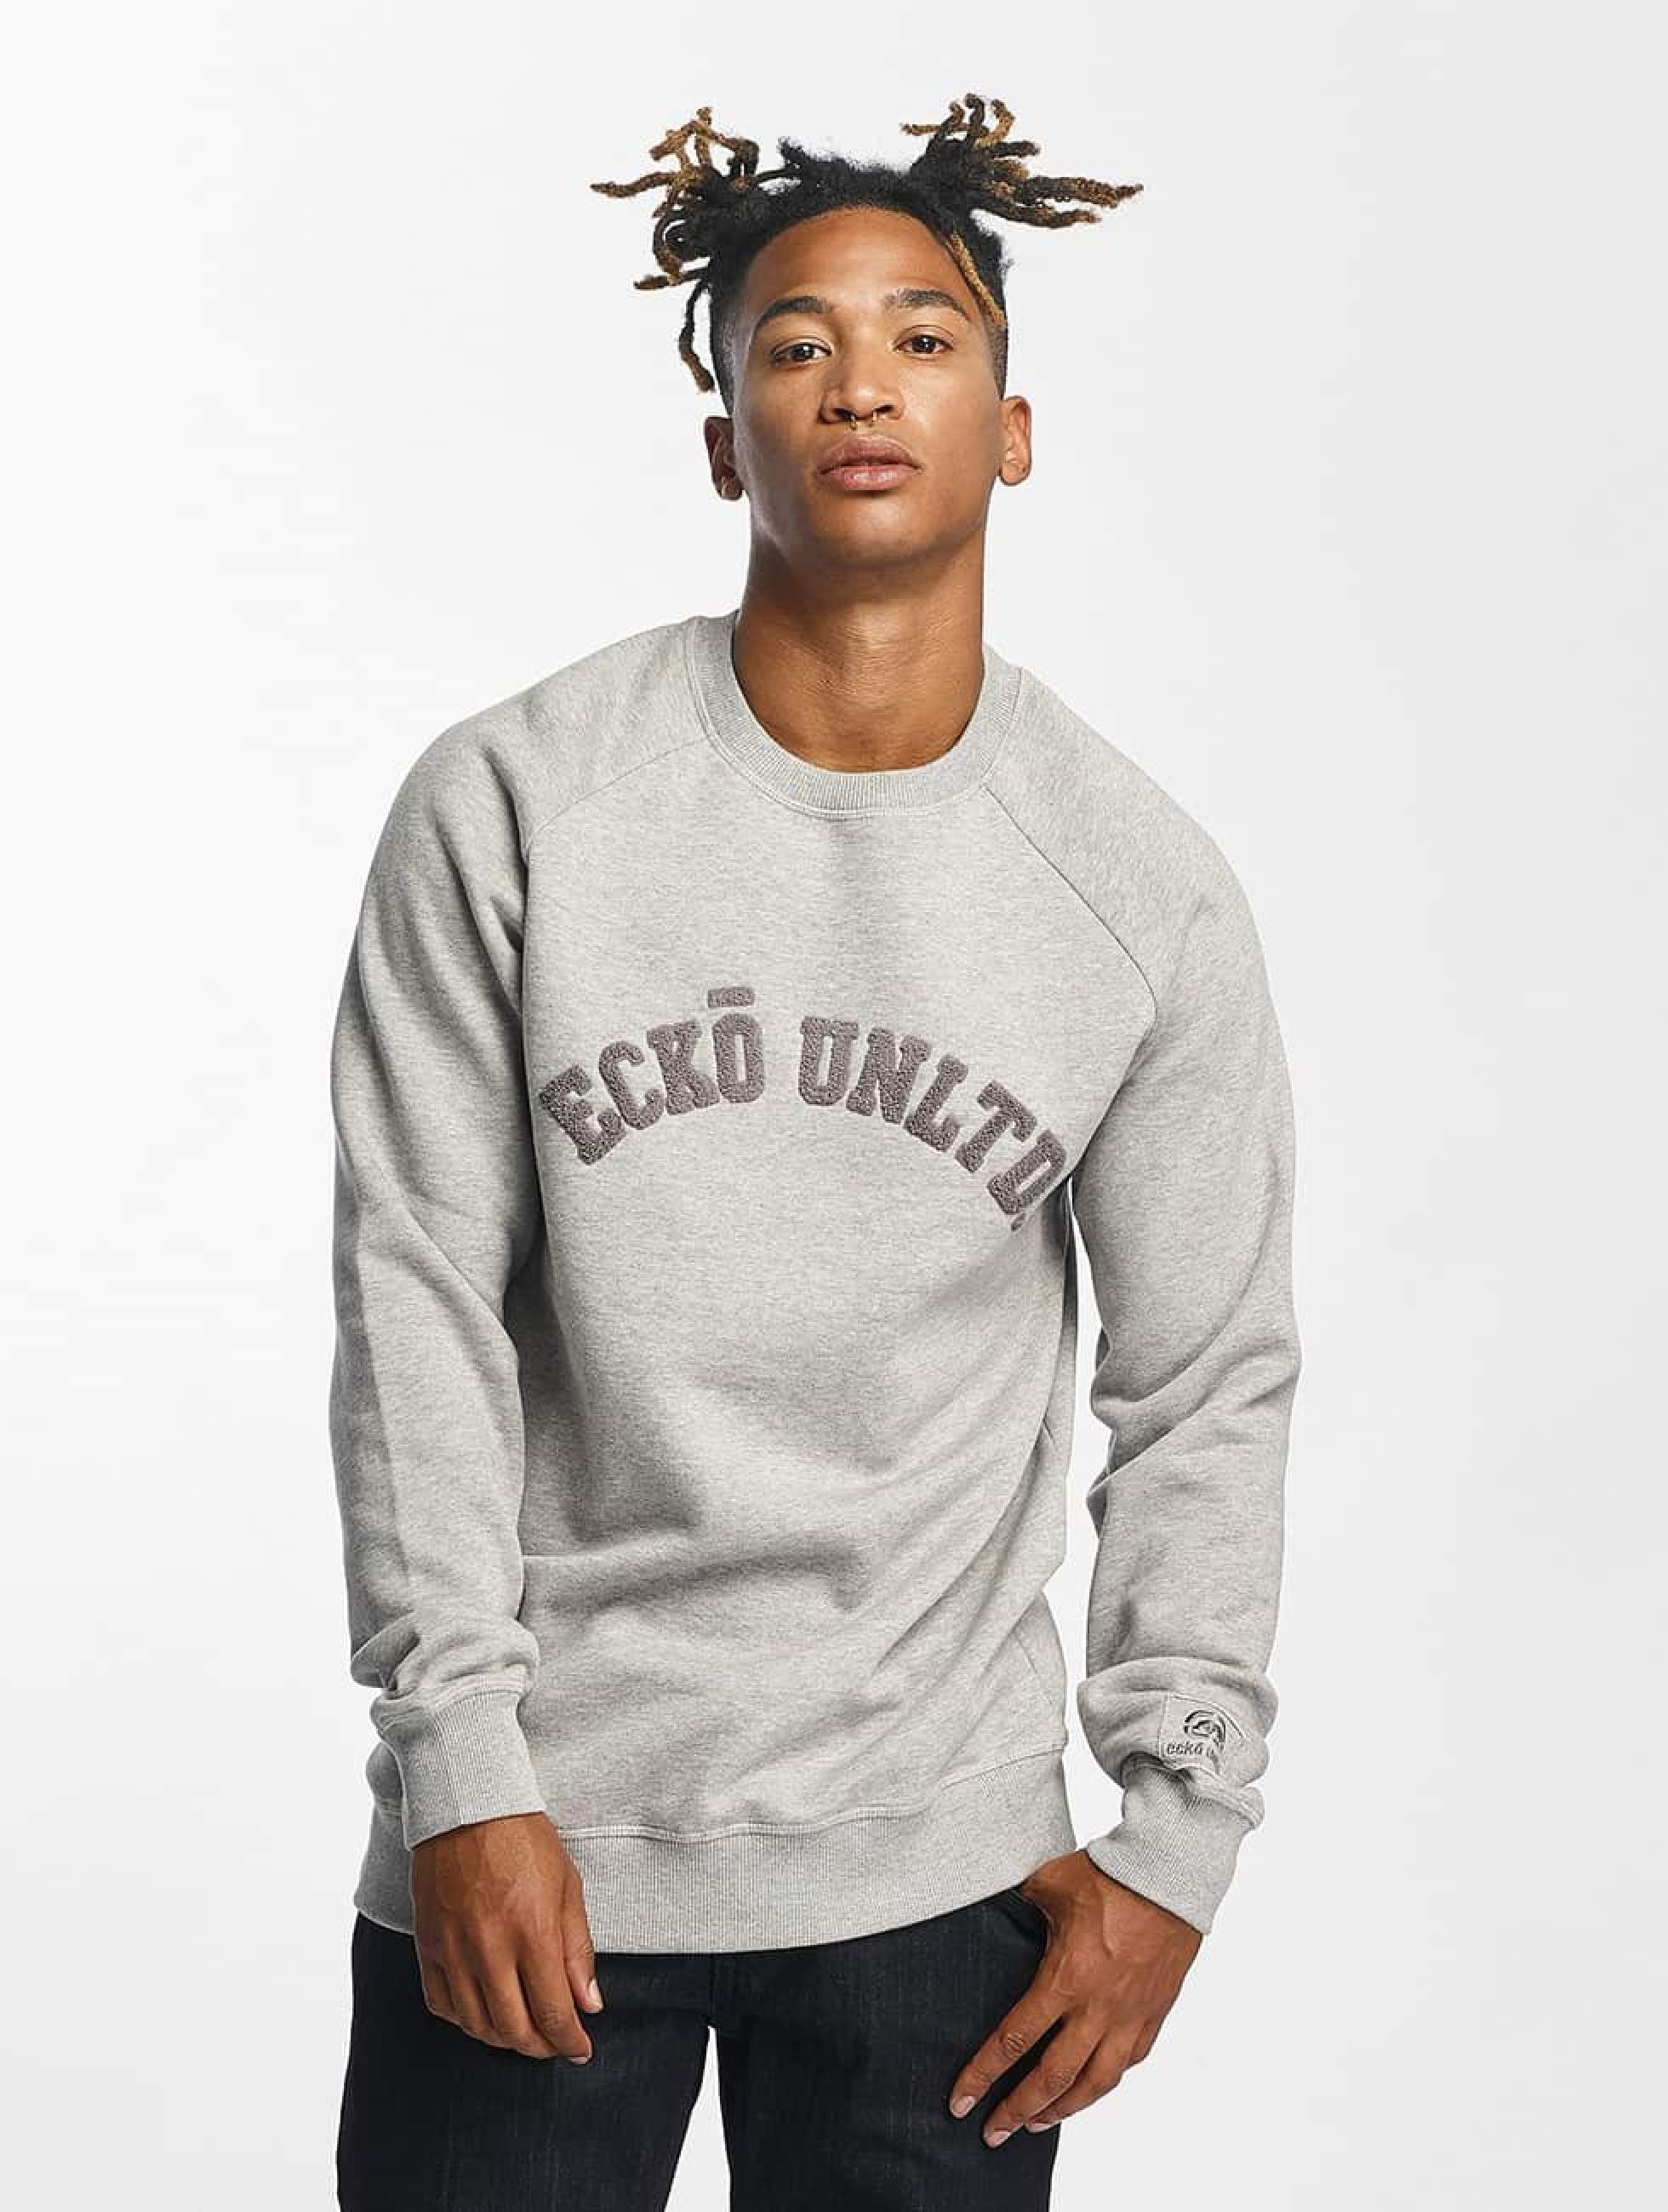 Ecko Unltd. / Jumper Dagoba in grey L